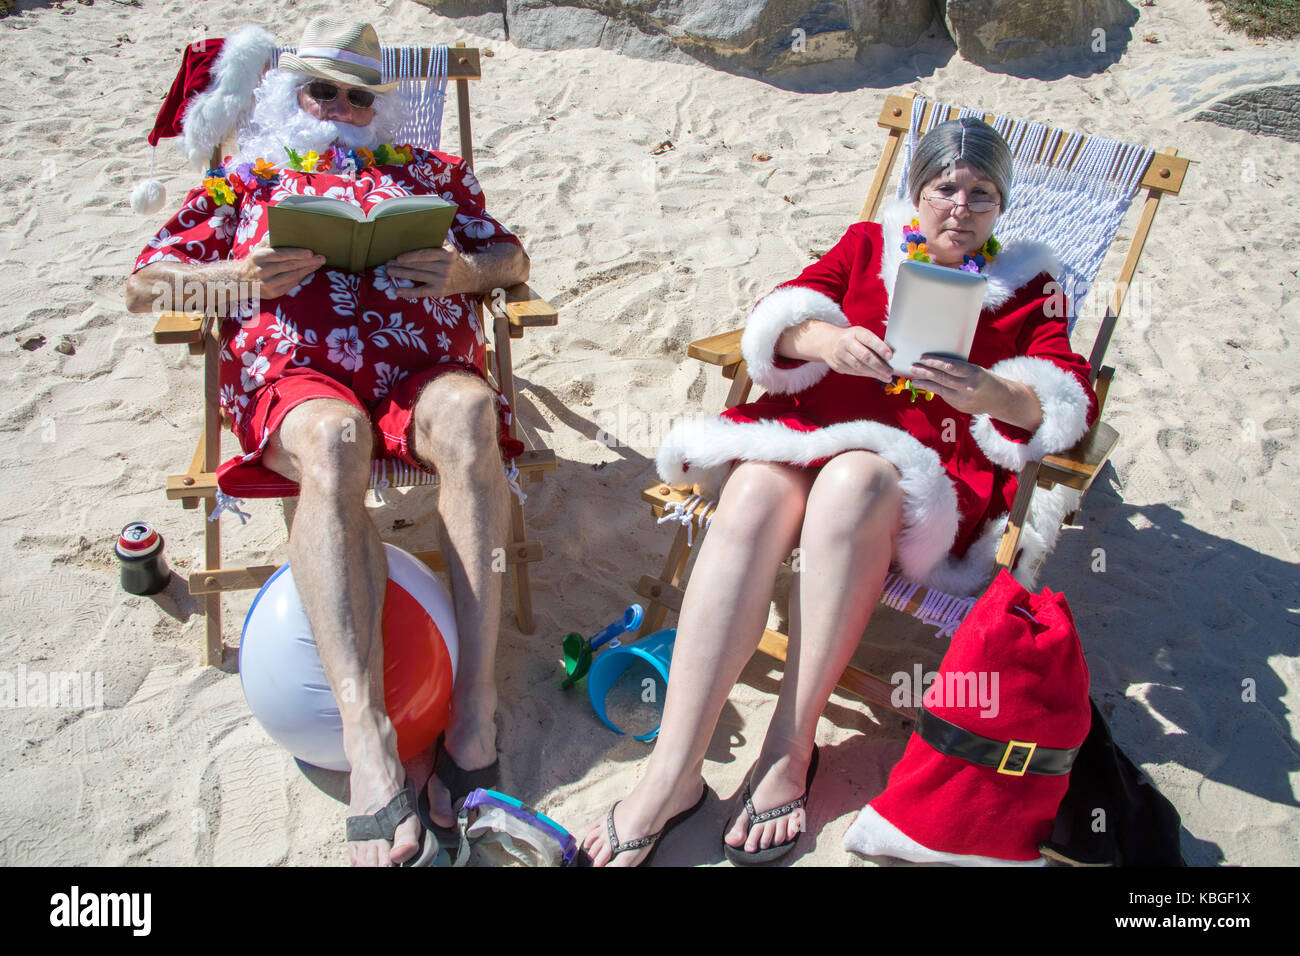 12ee77a7 Santa Claus in red swimming trunks and Hawaiian shirt lounging on sandy  beach with Mrs Claus reading on sandy beach.